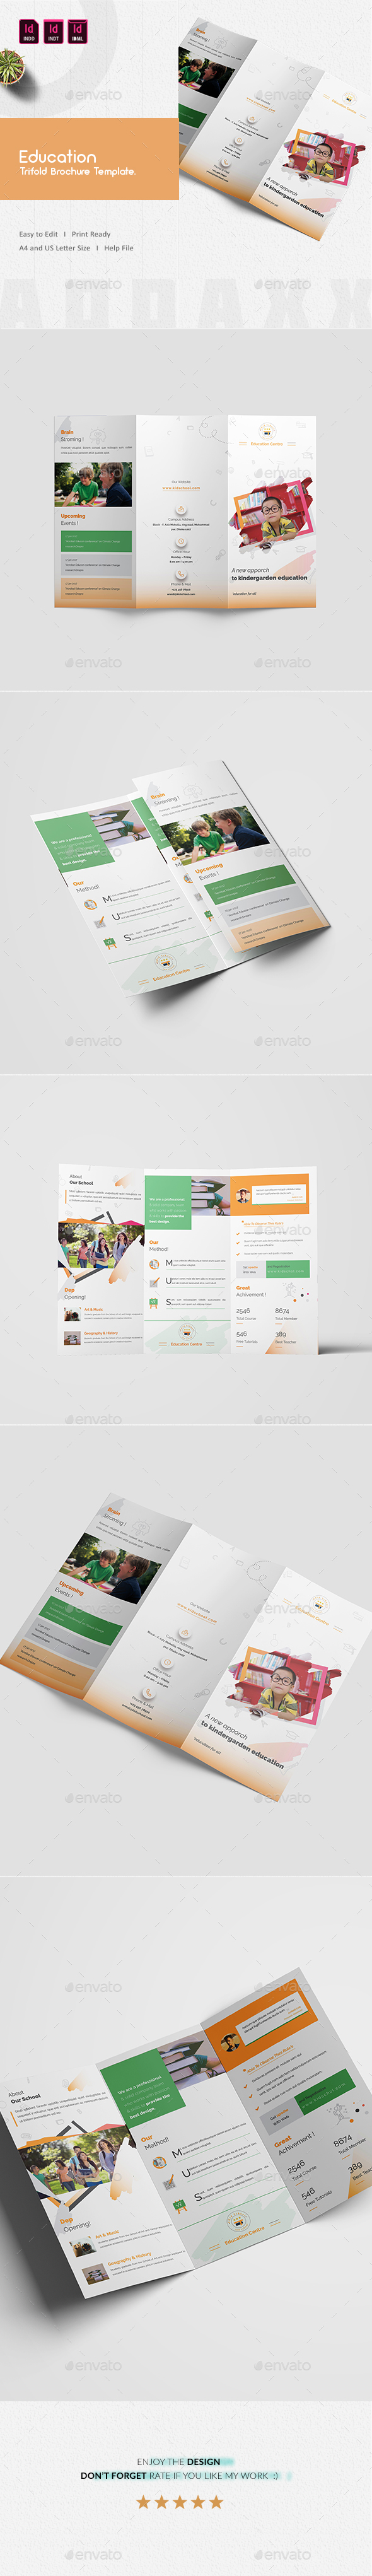 Education Trifold Brochure Template - Informational Brochures